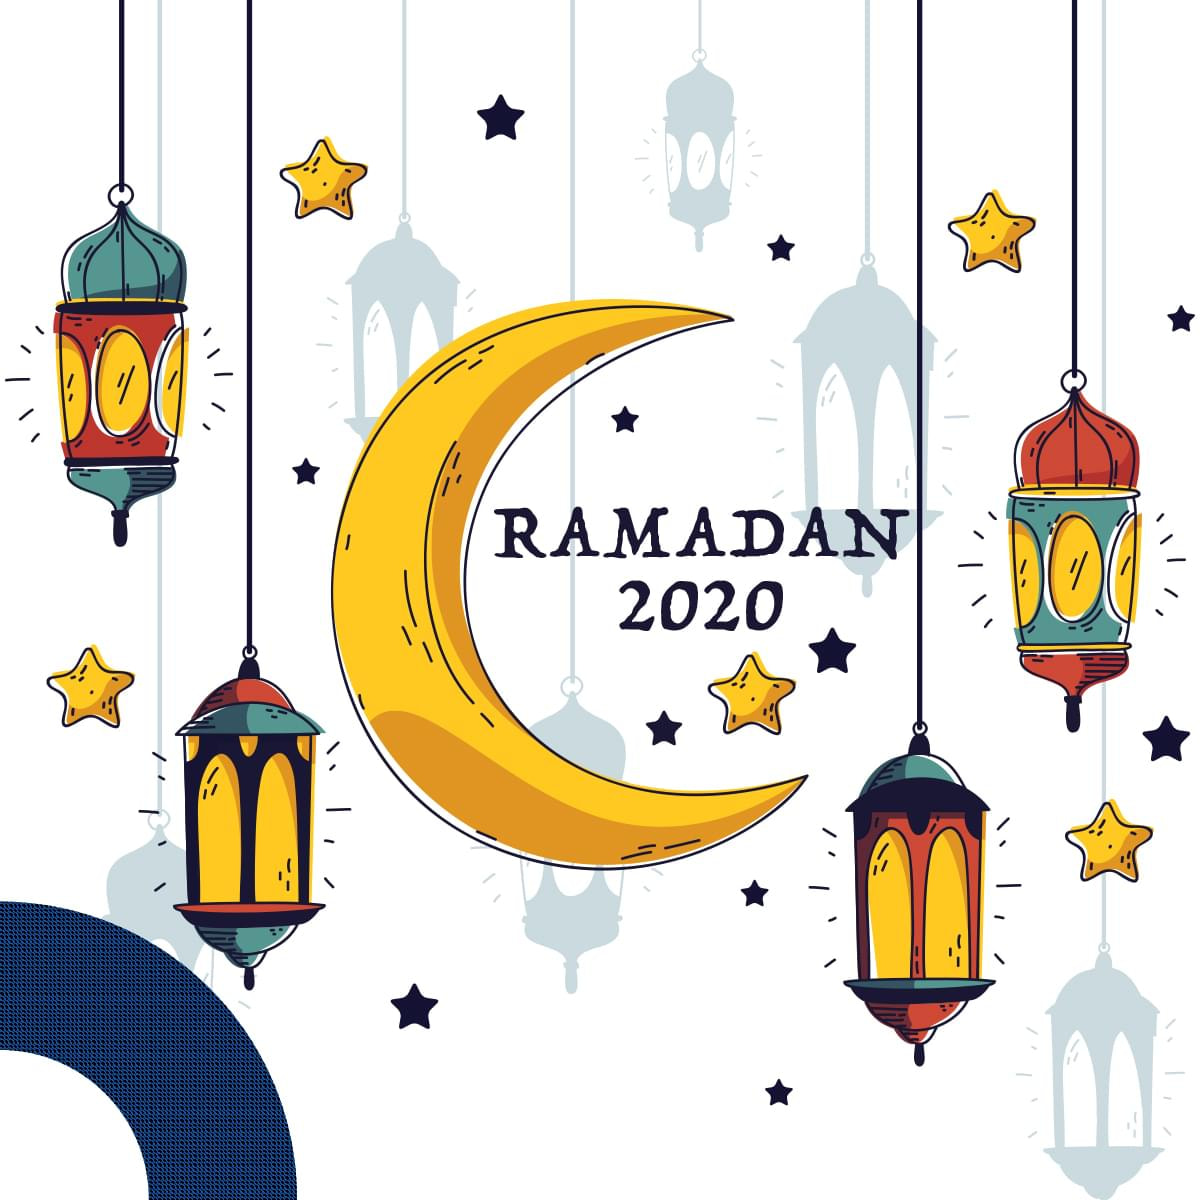 What's your marketing strategy for Ramadan 2020?